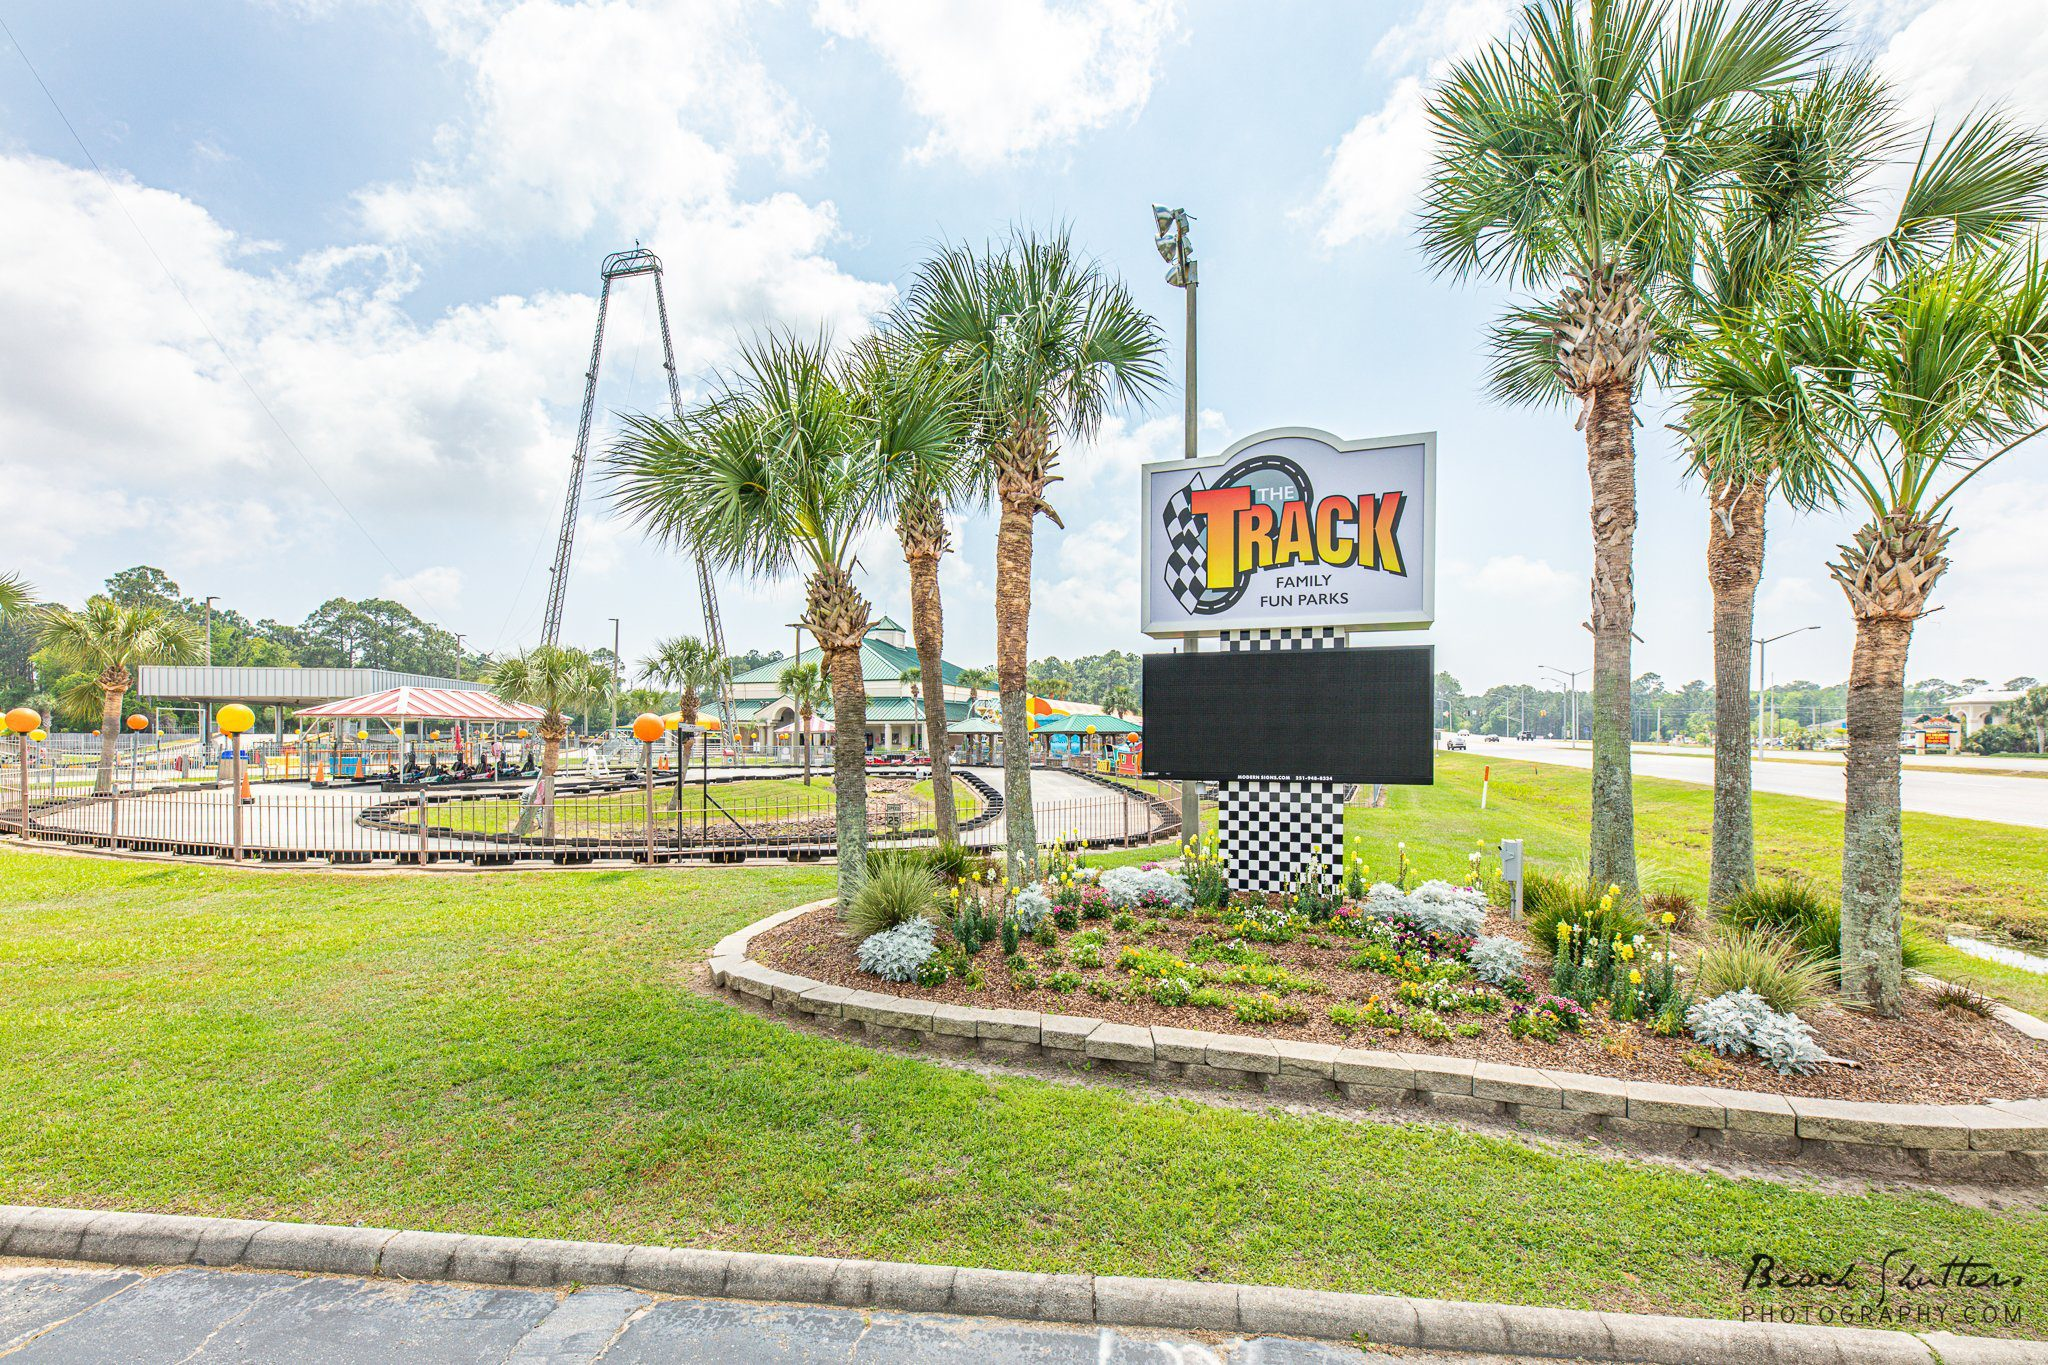 The Track in Gulf Shores family fun parks